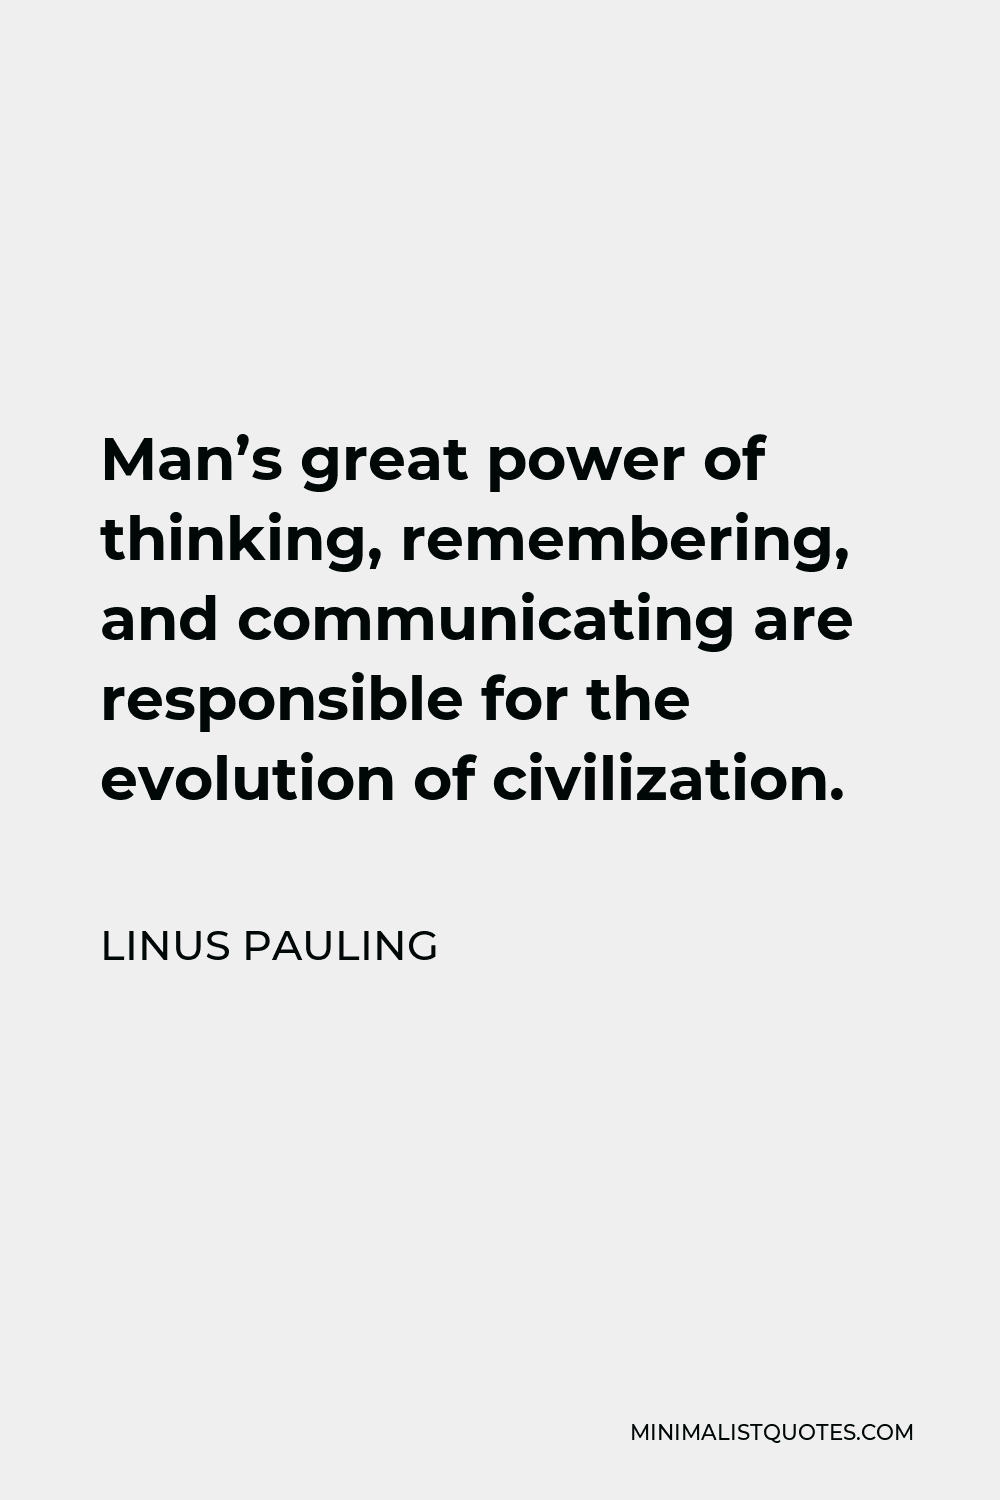 Linus Pauling Quote - Man's great power of thinking, remembering, and communicating are responsible for the evolution of civilization.